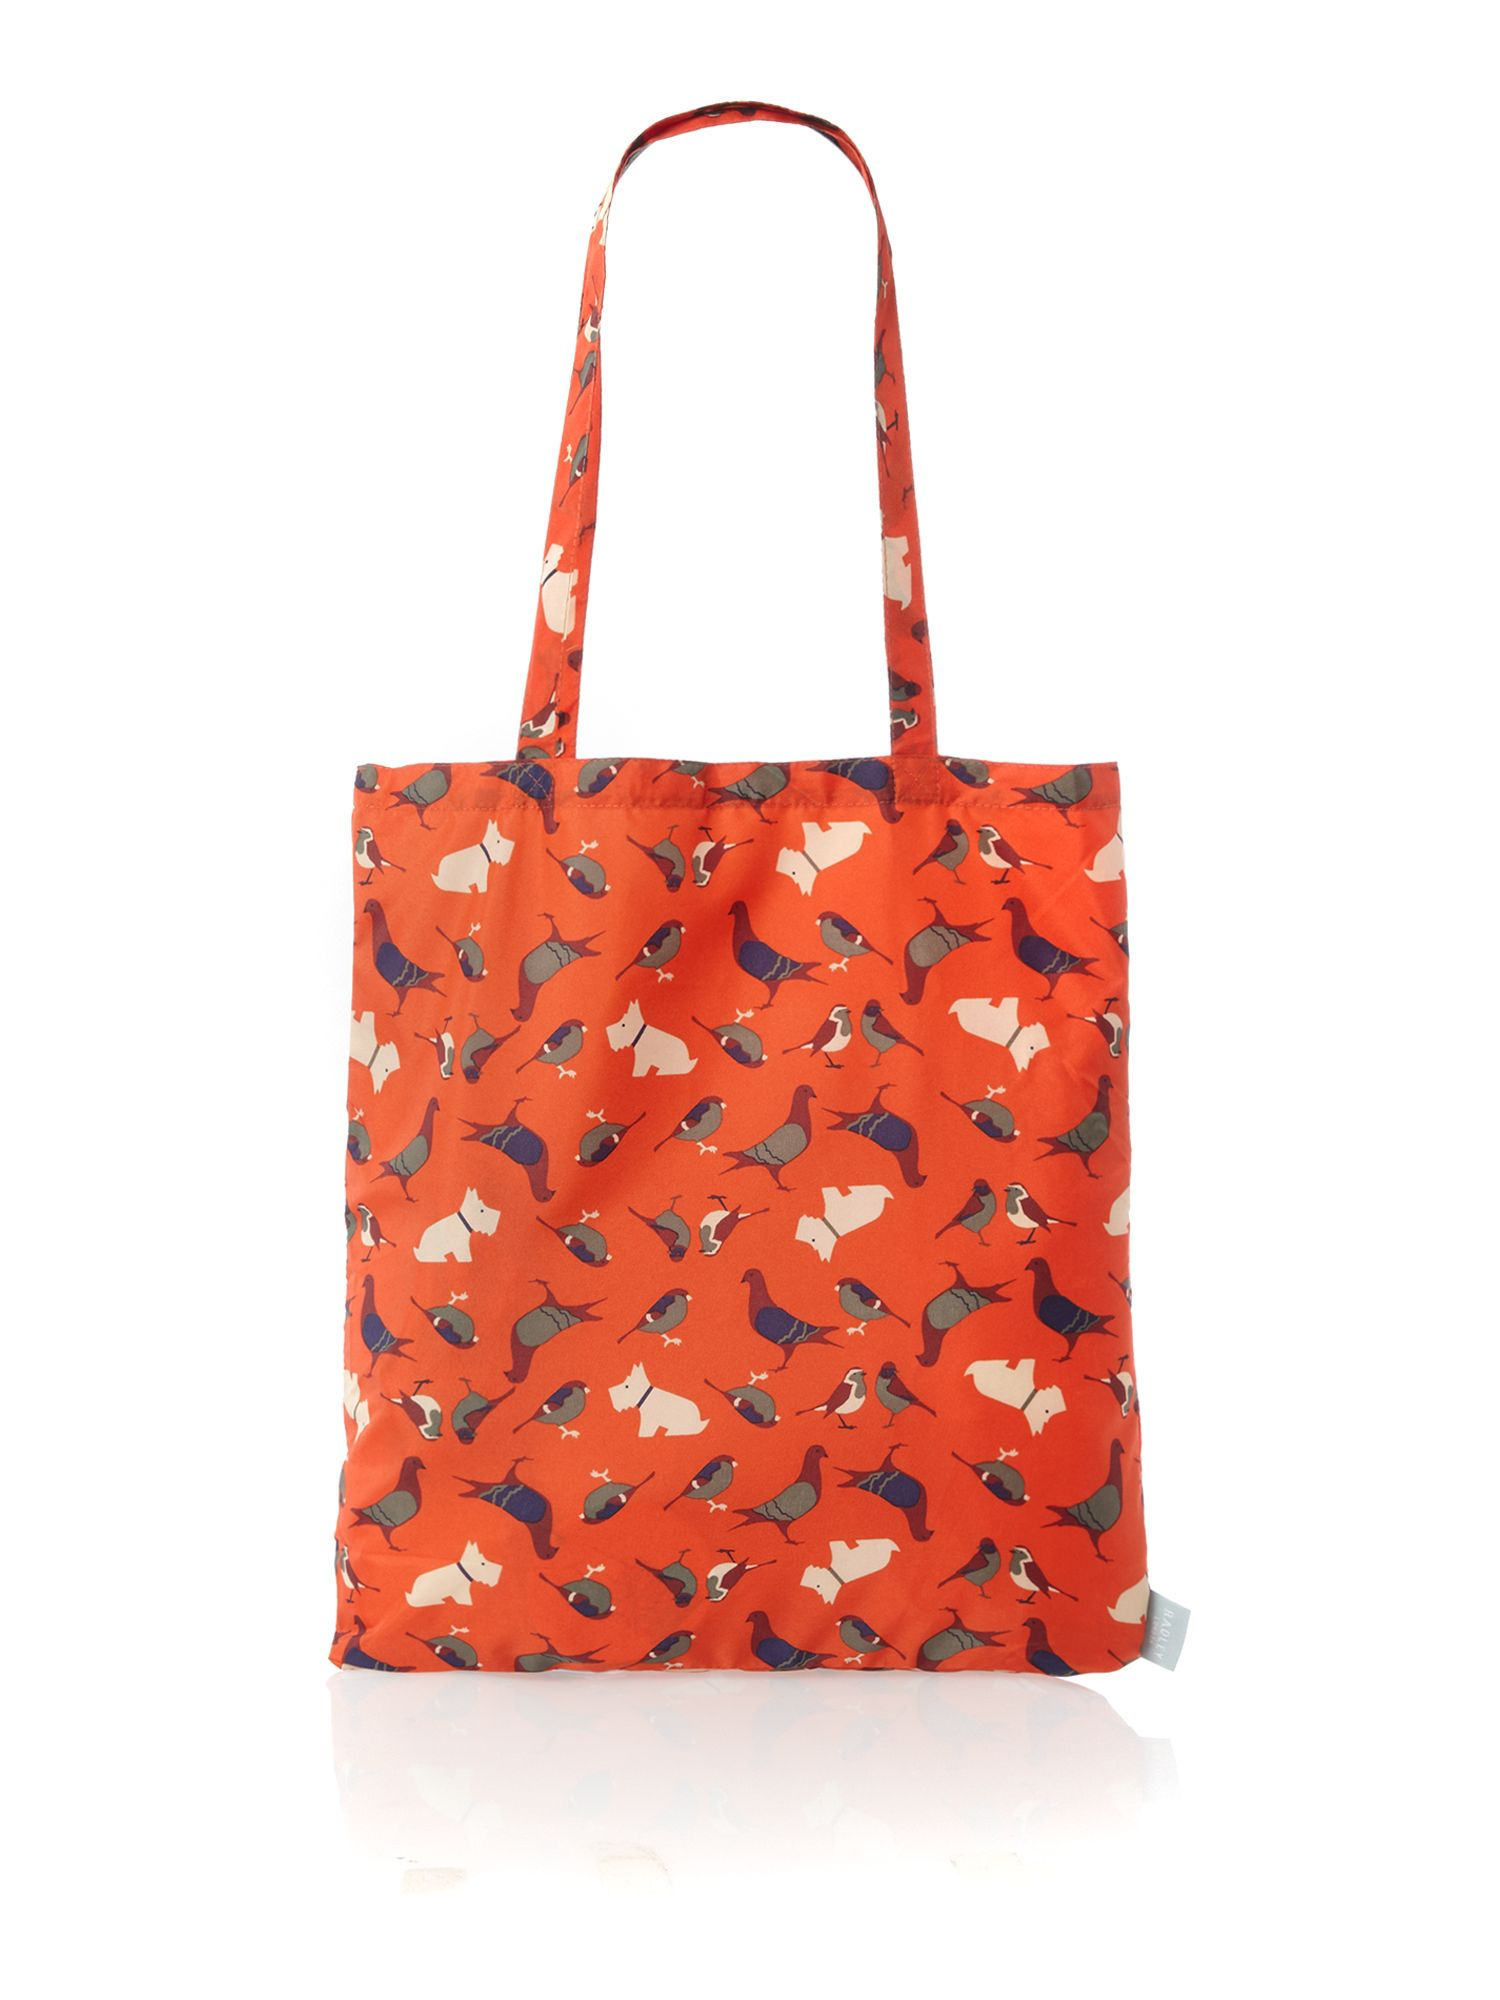 radley a little bird told me orange foldaway tote in orange lyst gallery